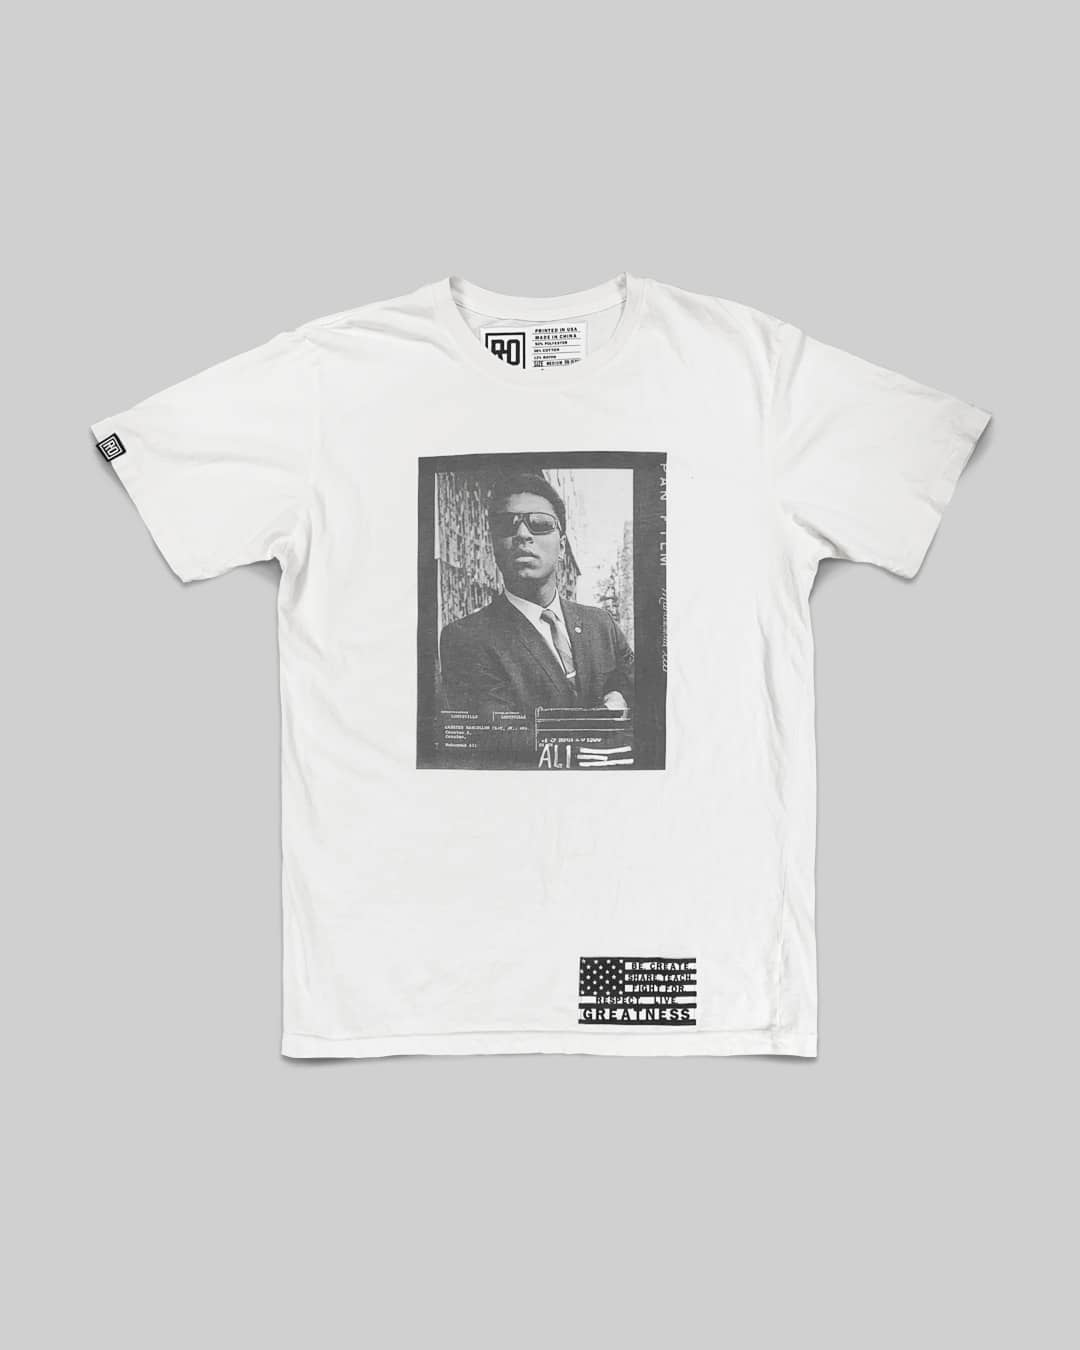 BHT - Ali Redacted Photo Tee - Roots of Inc dba Roots of Fight